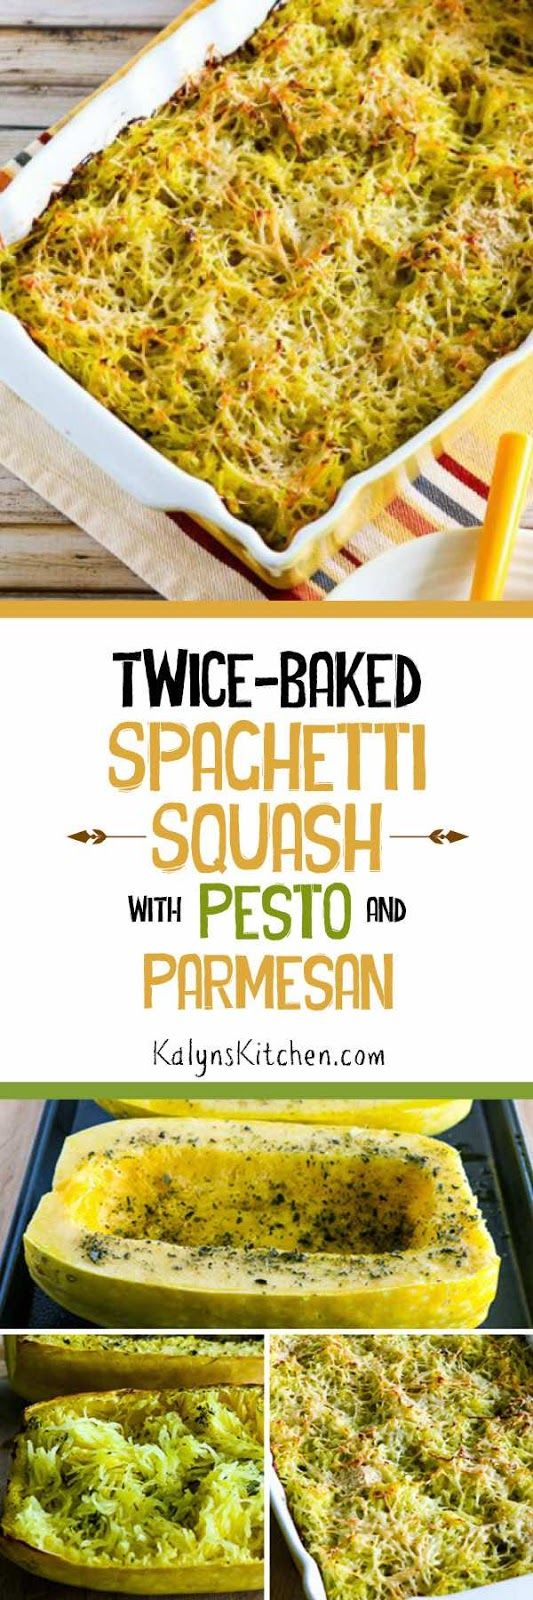 Twice-Baked Spaghetti Squash Recipe with Pesto and Parmesan could make ...